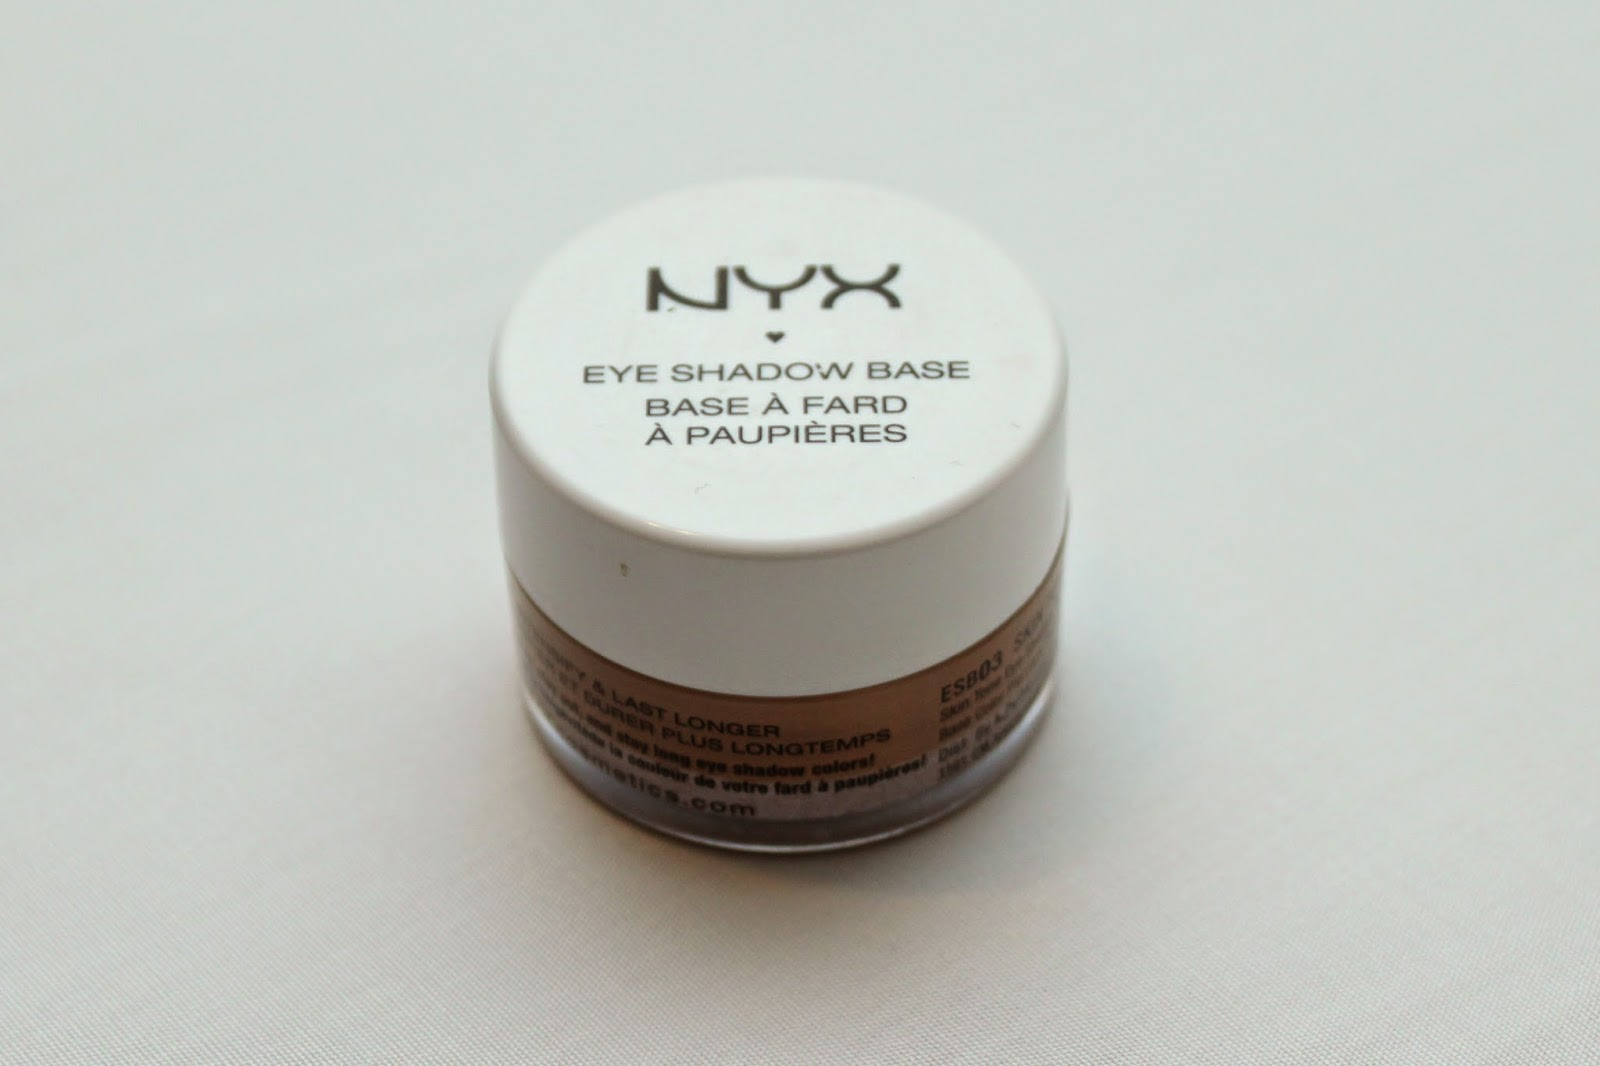 Nyx Eye Shadow Base in Nude